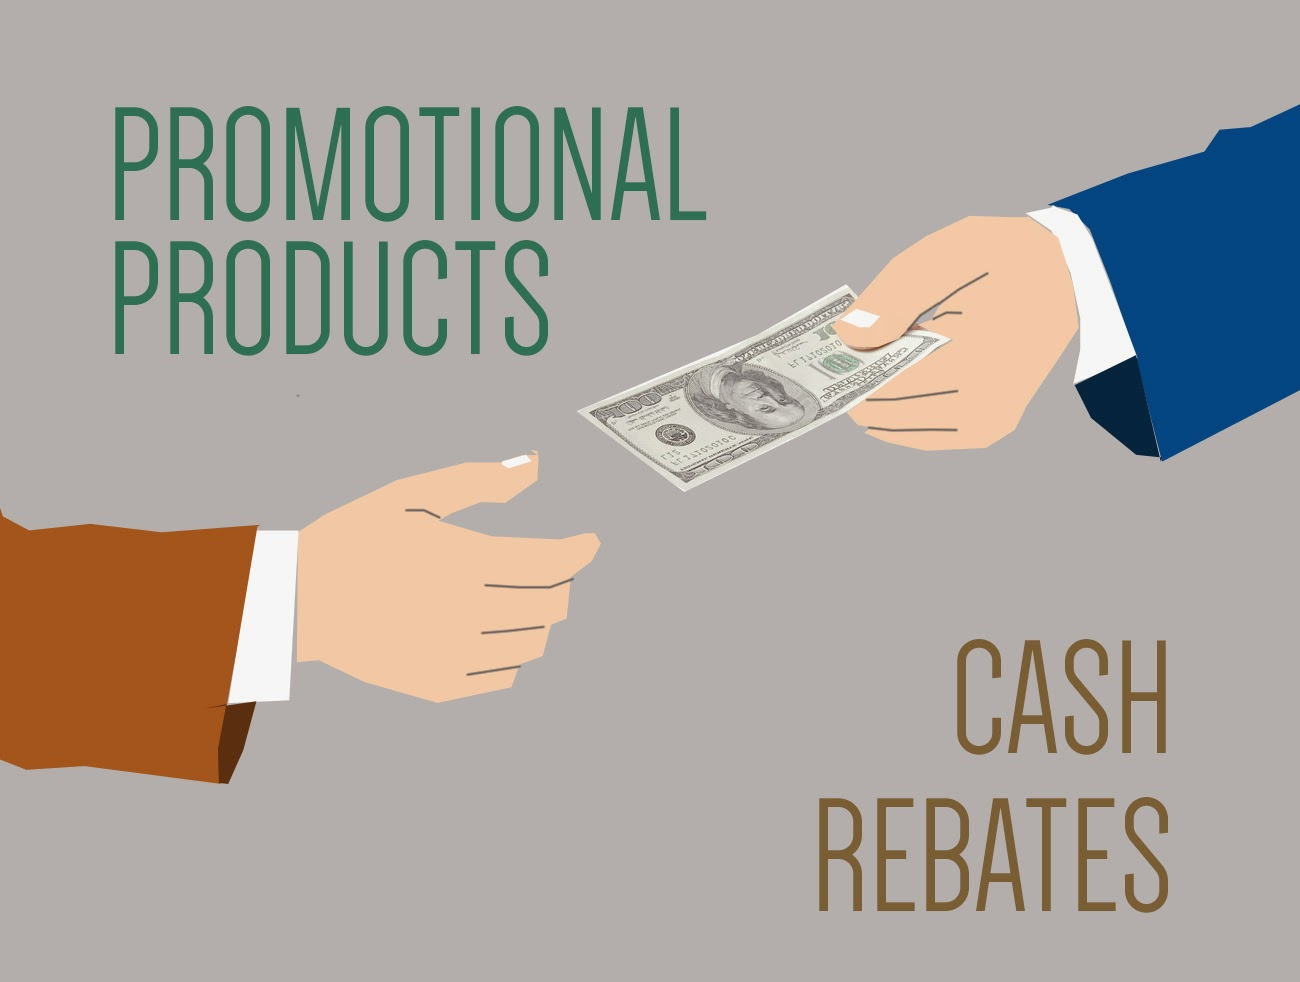 Promotional Products - Cash Rebates